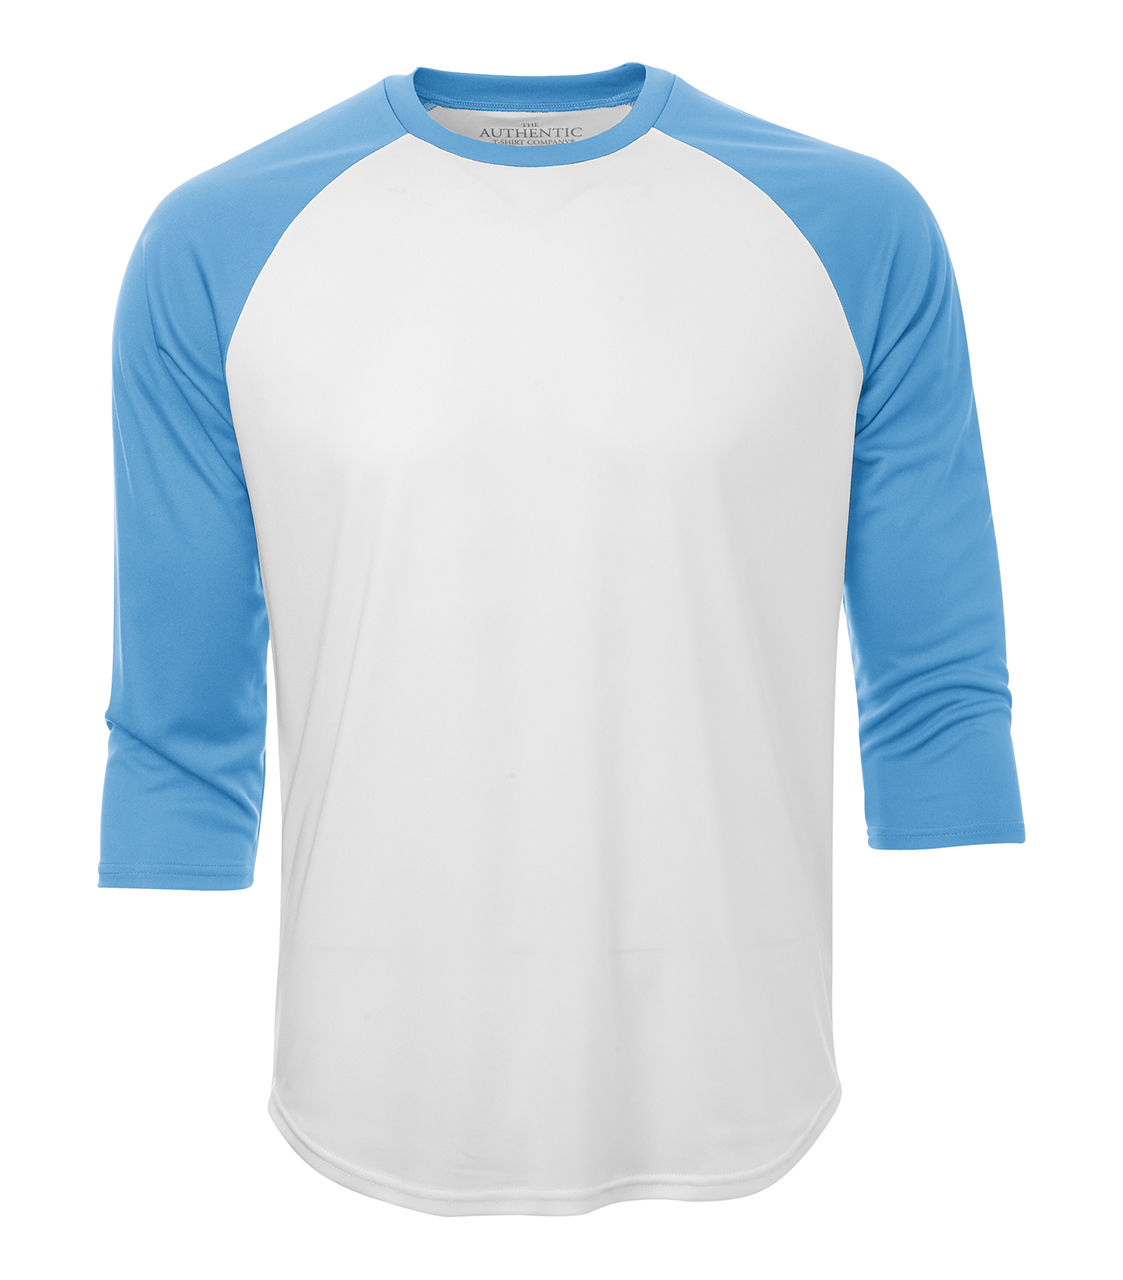 Picture of ATC Performance Pro Team Baseball Jersey